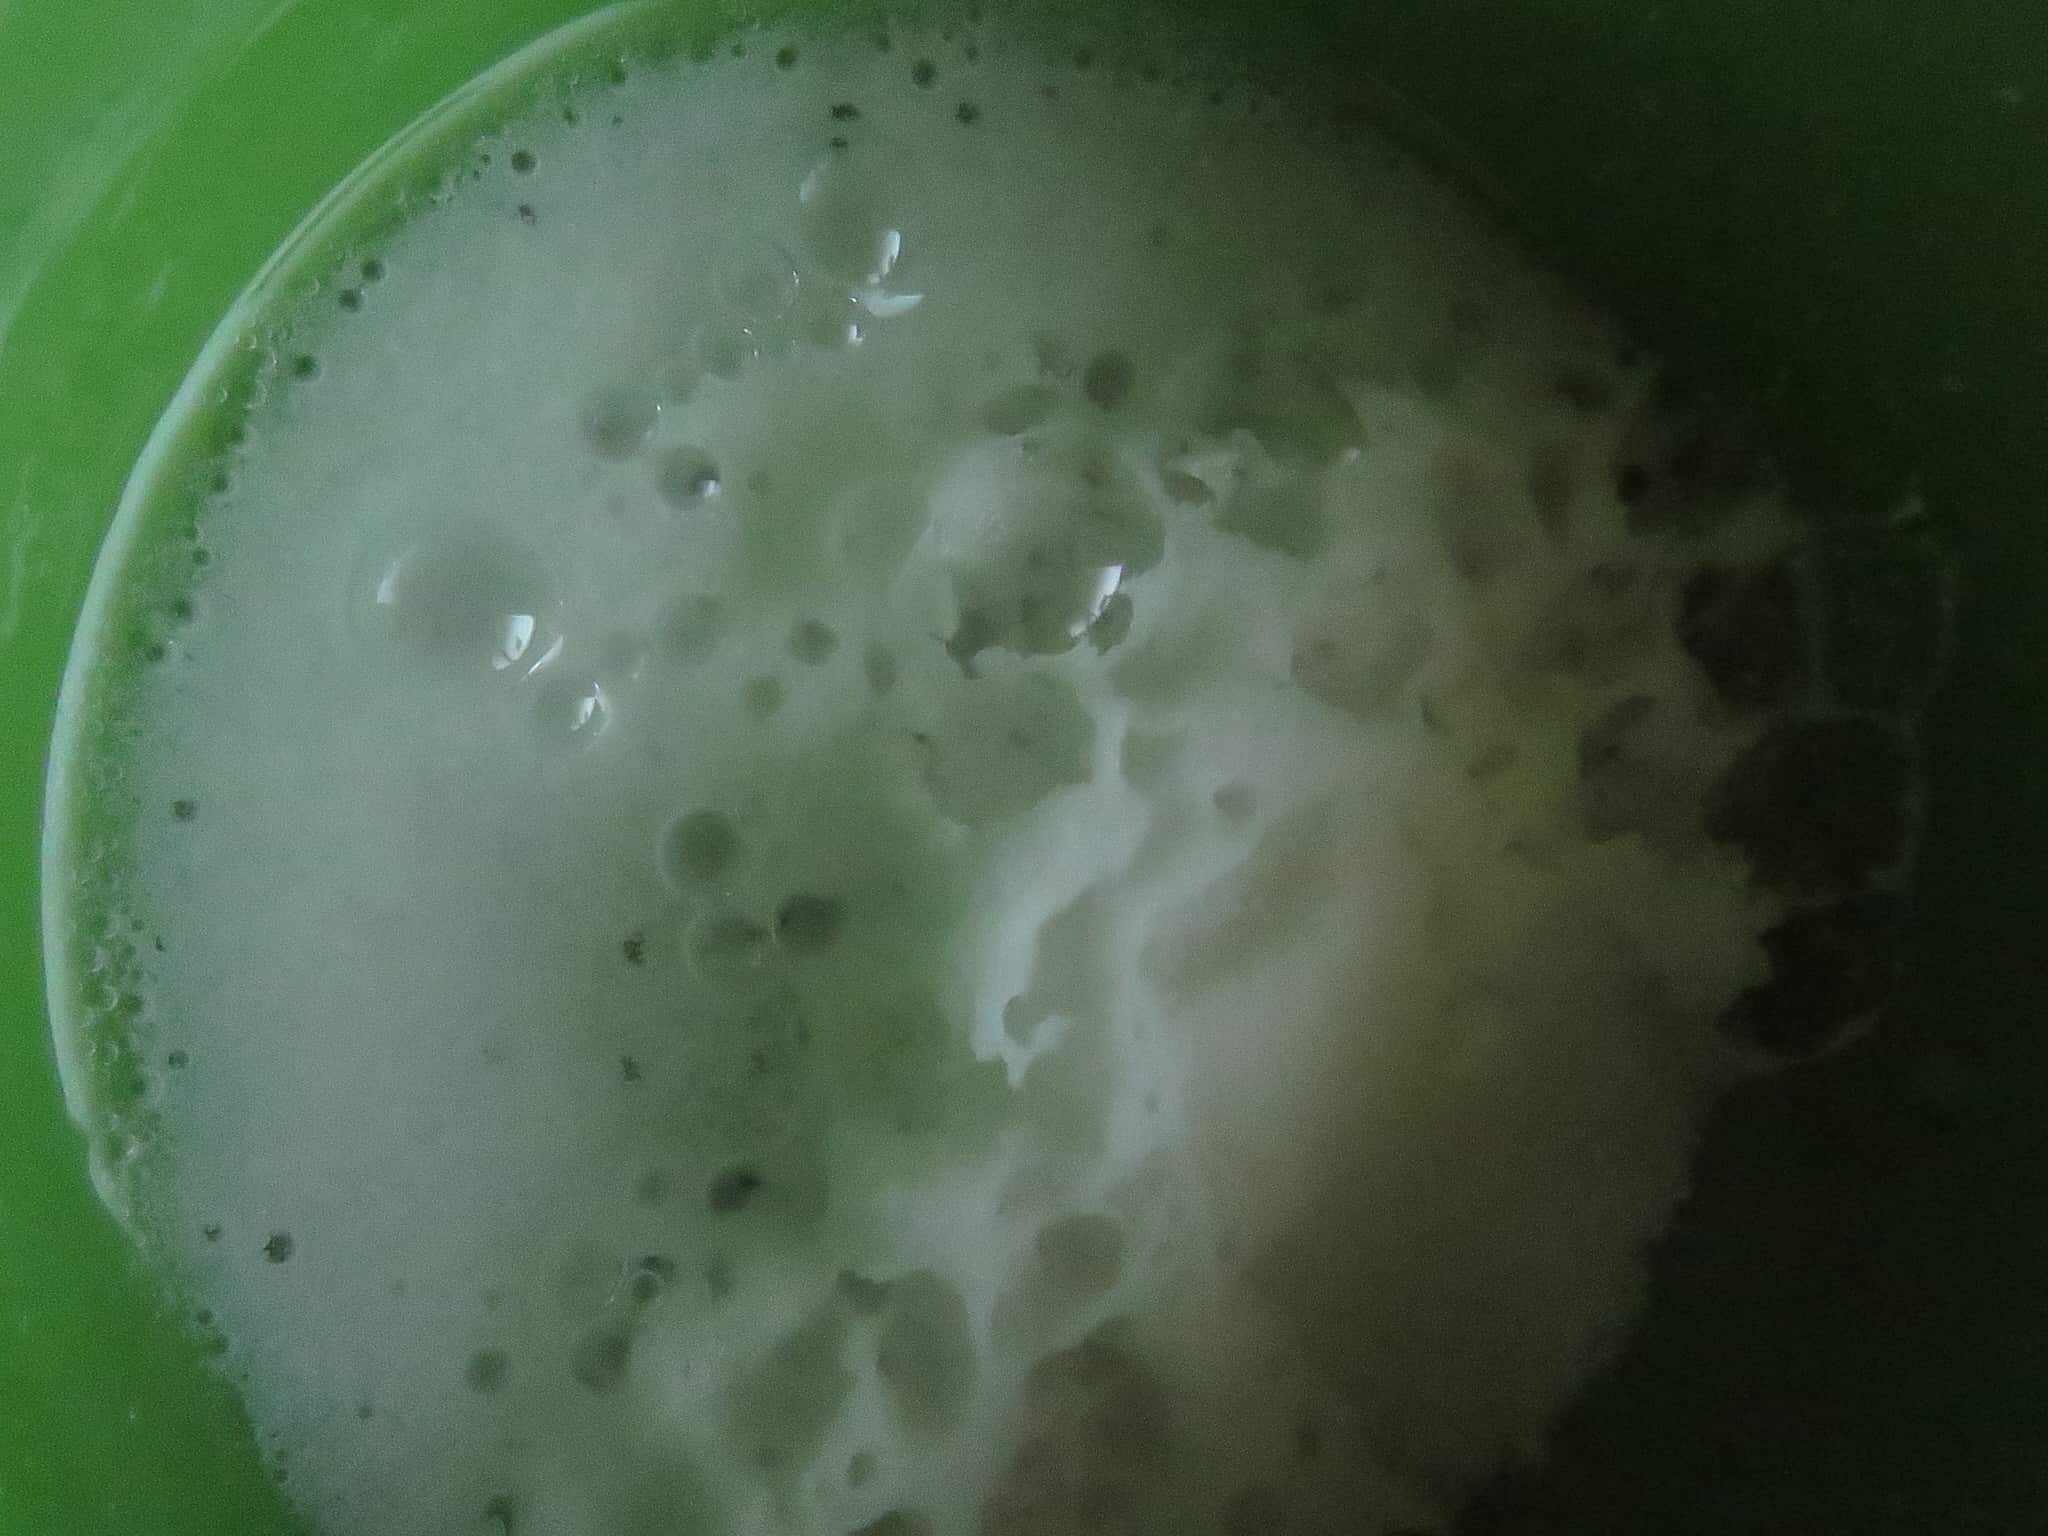 image shows baking soda activated by adding vinegar.